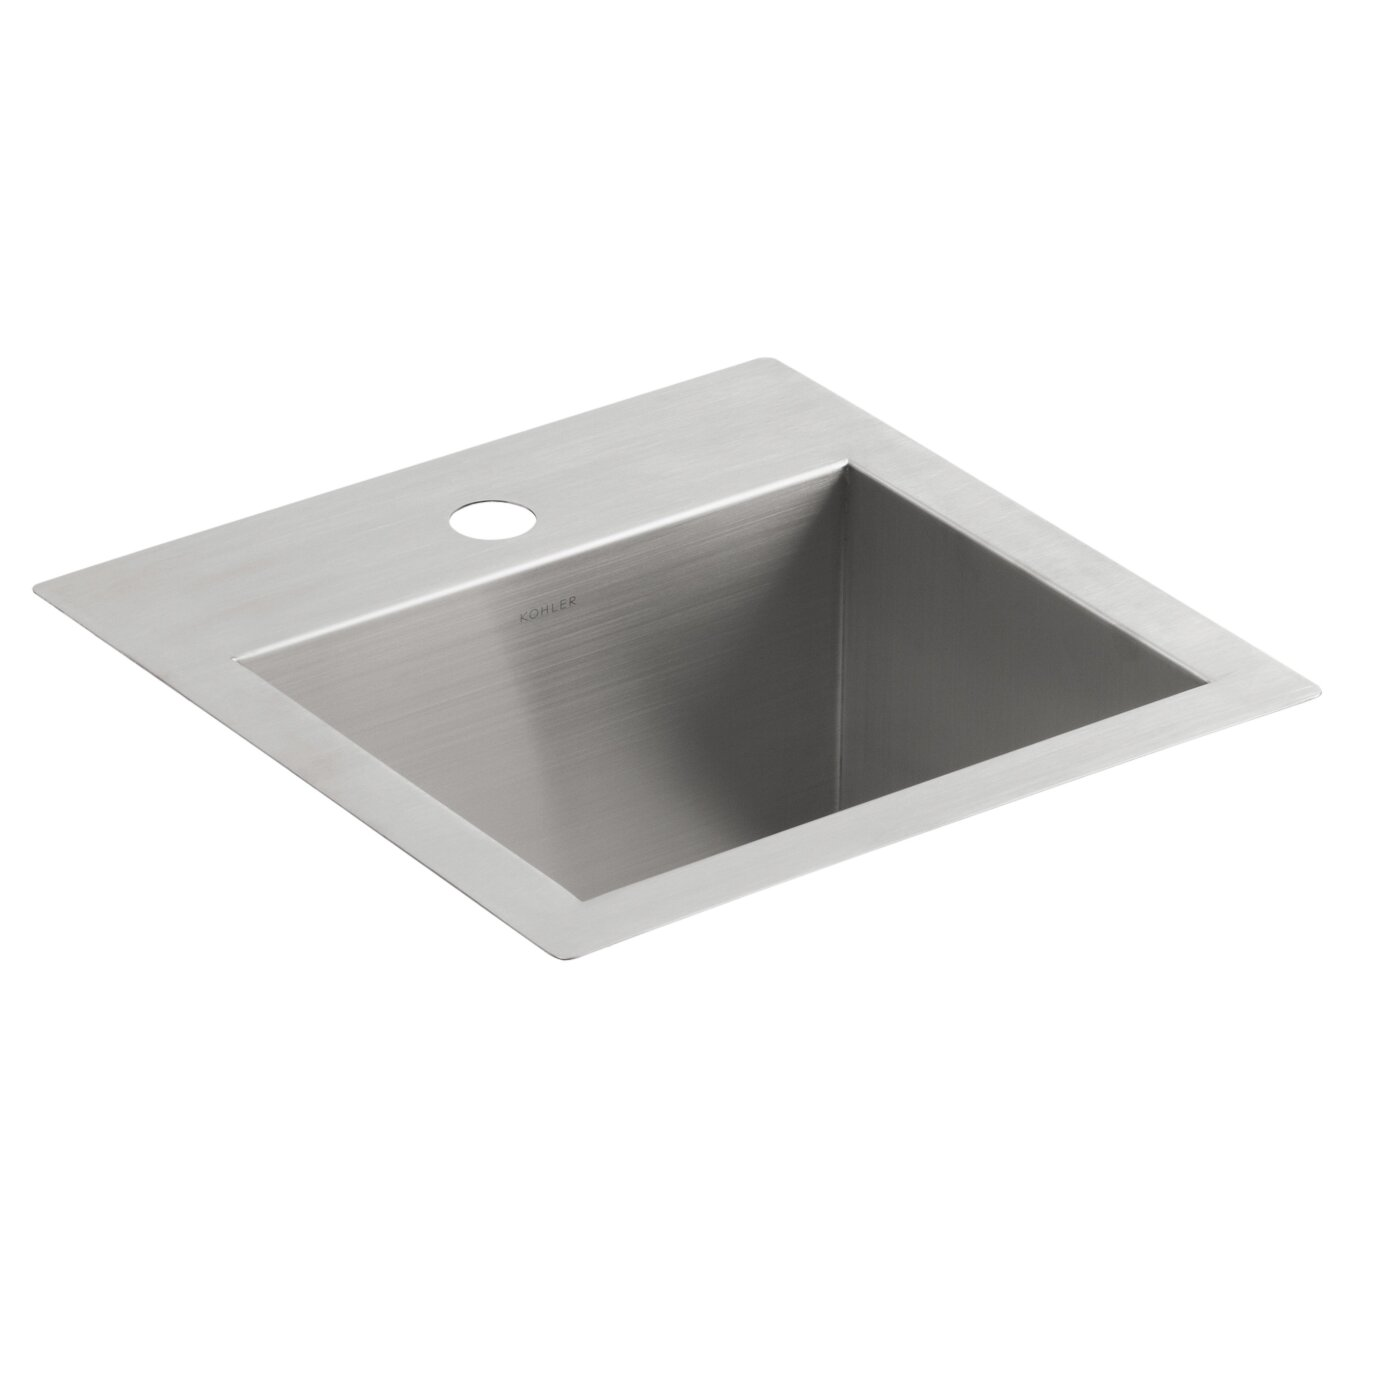 Kohler Vault Sink : Kohler Vault Top-Mount/Under-Mount Bar Sink with Single Faucet Hole ...